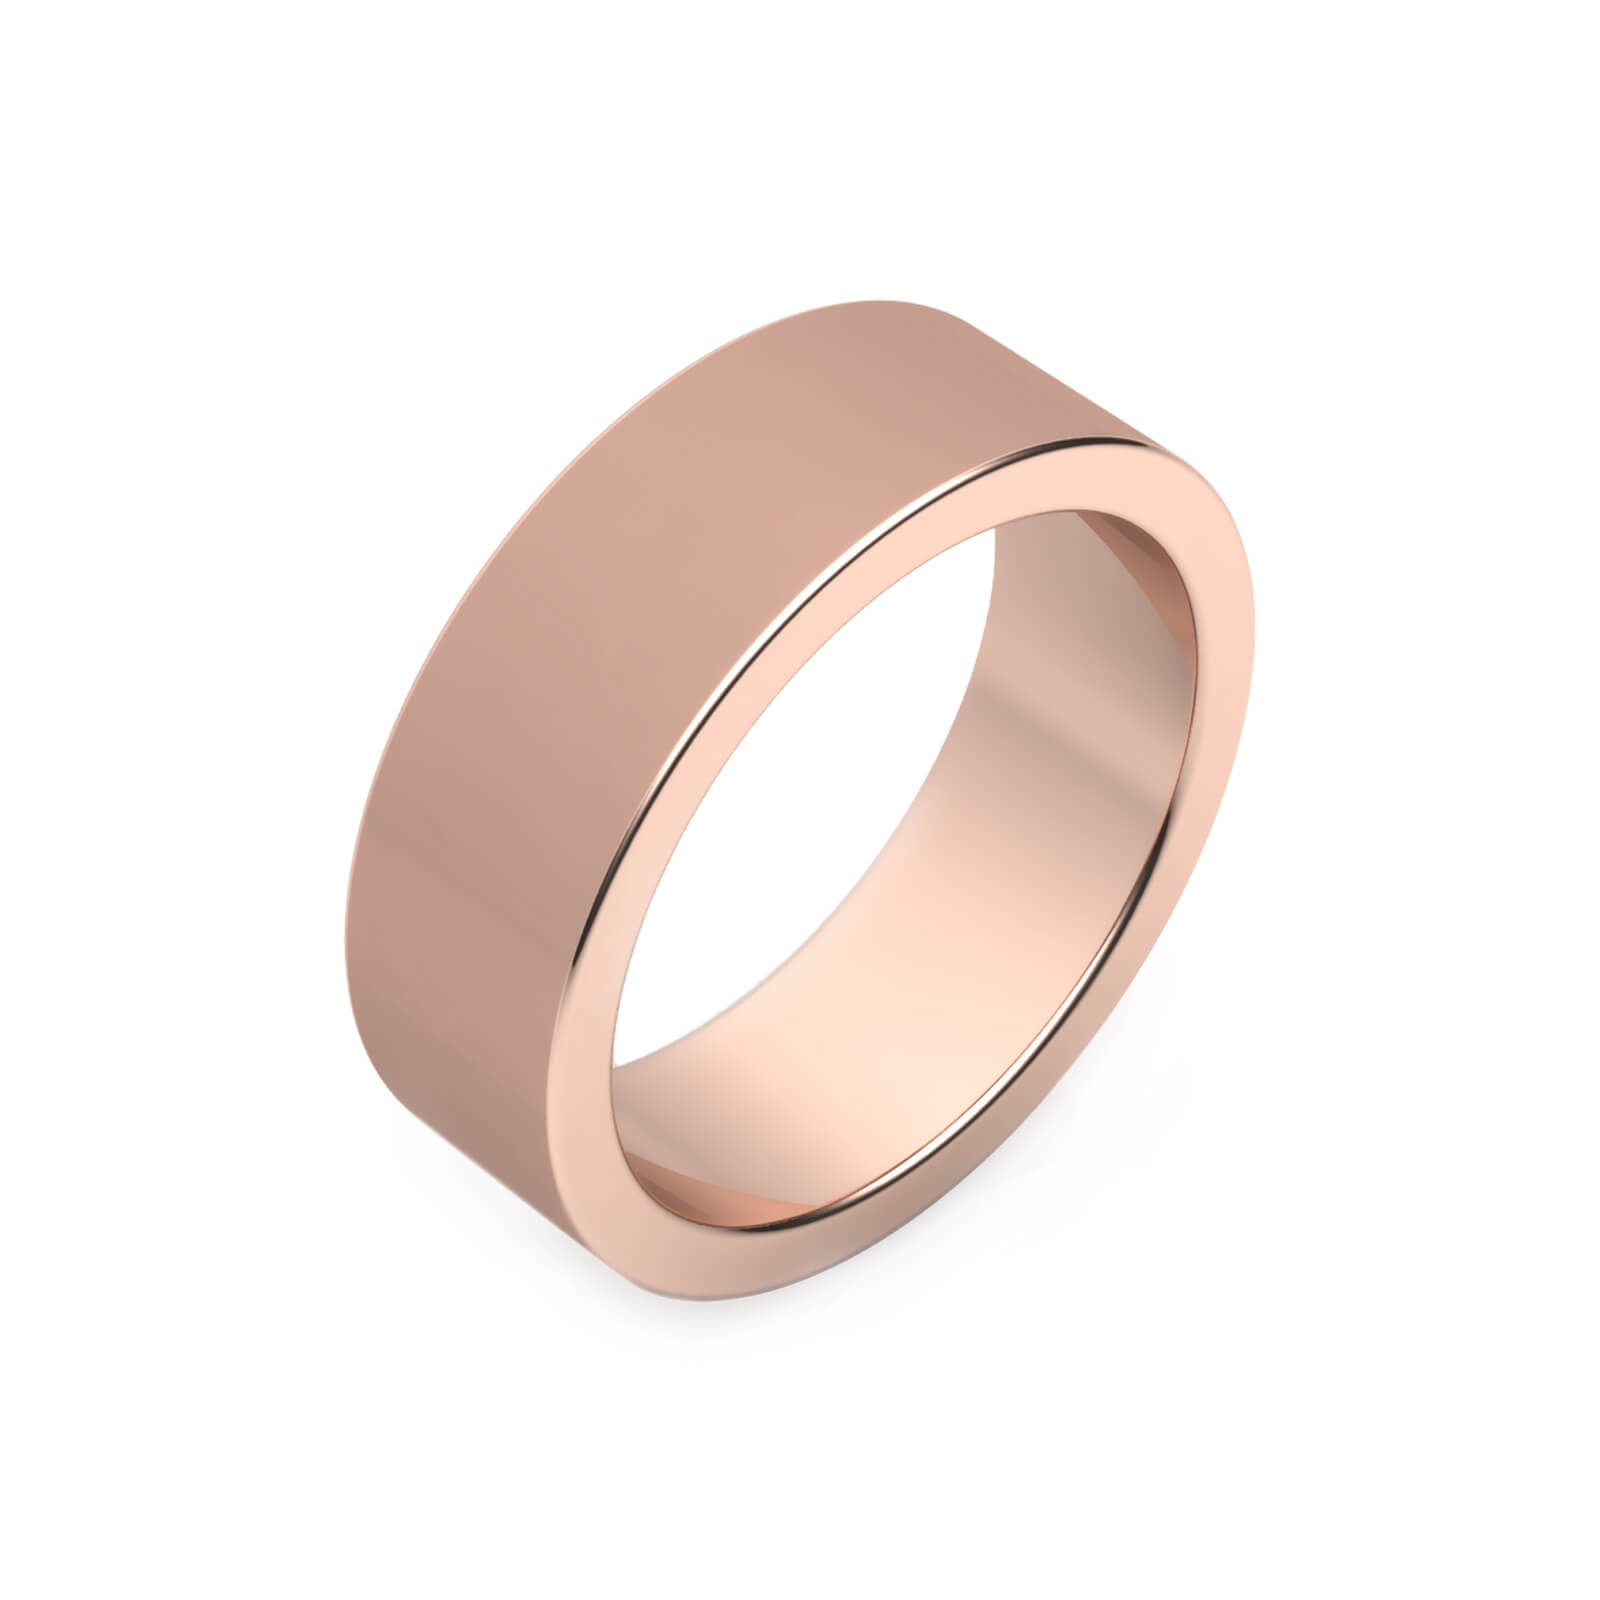 band rose k wedding textu silk fairtrade on gold recycled ecee gol matt ring bands mens in wide